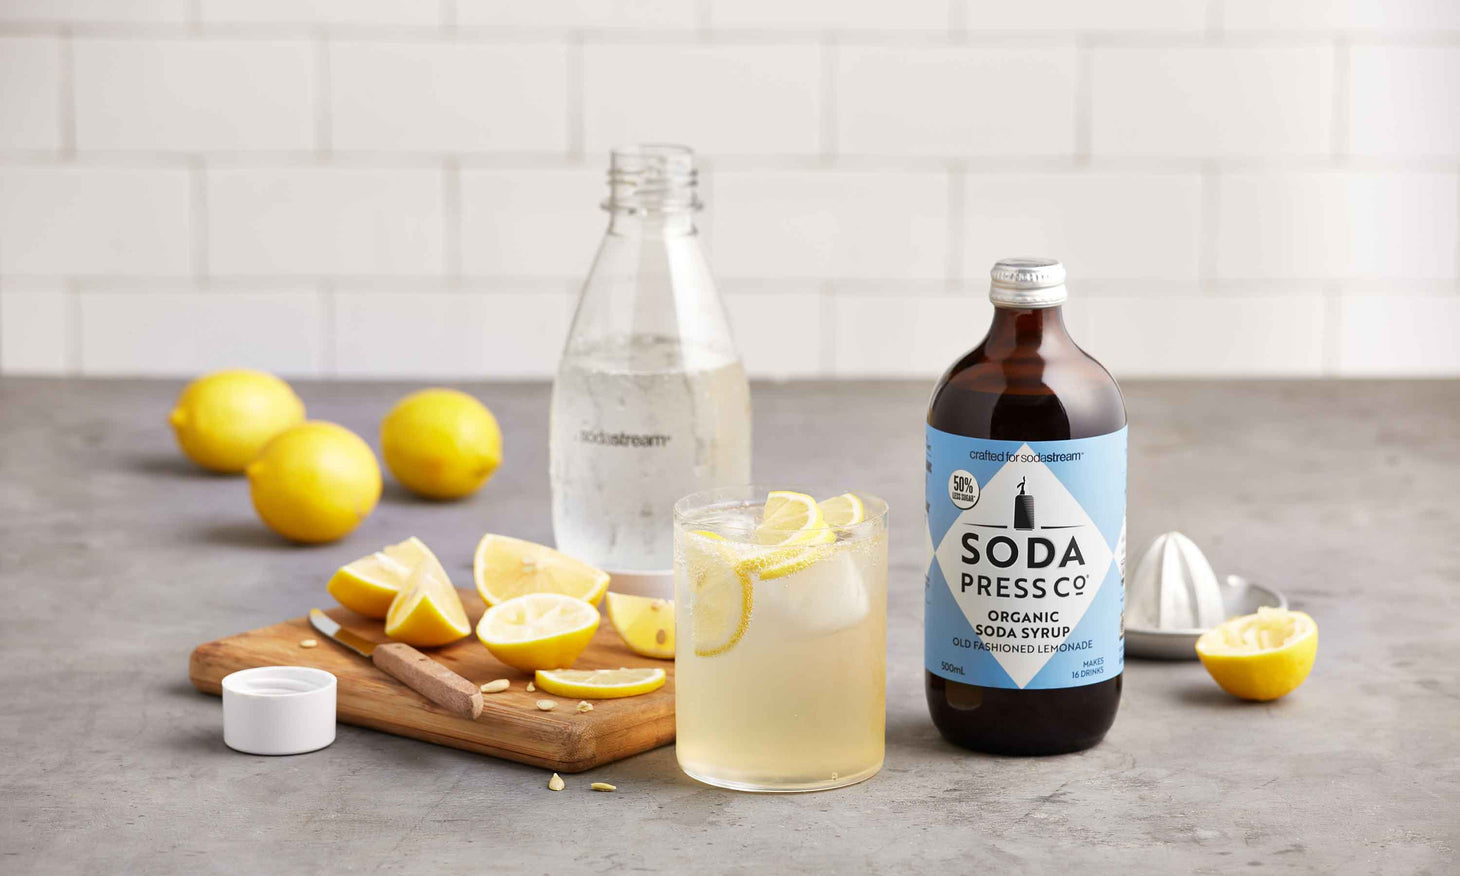 Organic - Old Fashioned Lemonade (soda & mixer syrup)